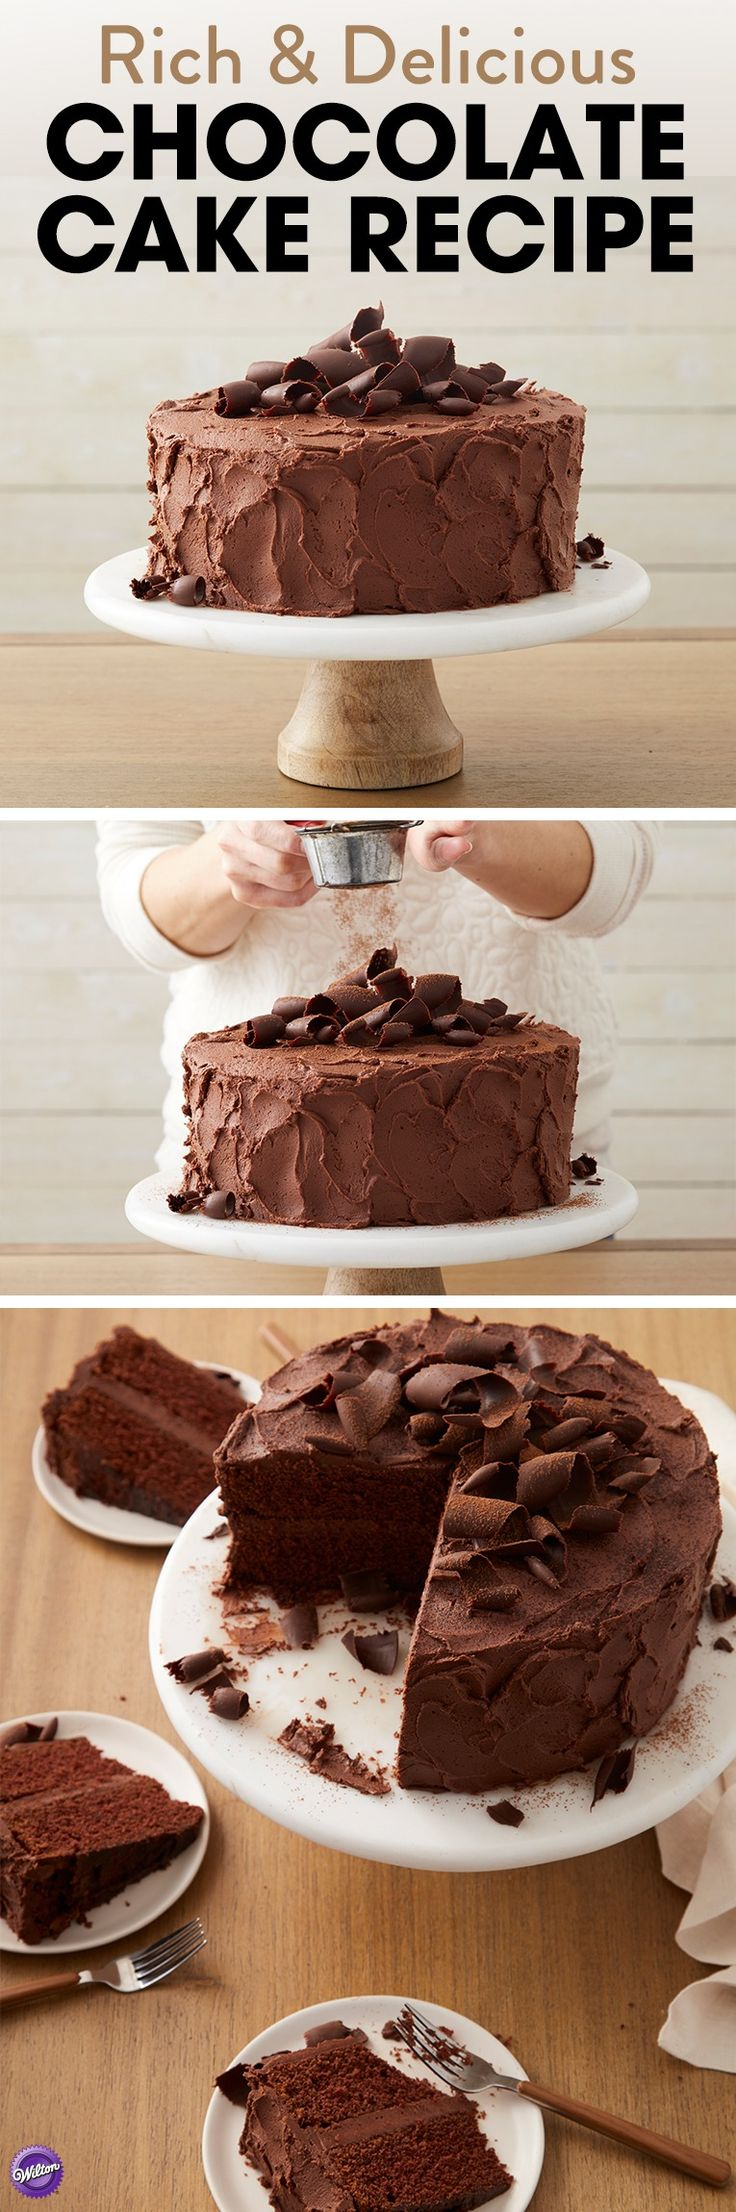 Get the recipe for this rich, delicious chocolate cake that will impress every chocolate lover at your gathering! Perfect to serve at any occasion including birthdays, showers, and anniversaries.